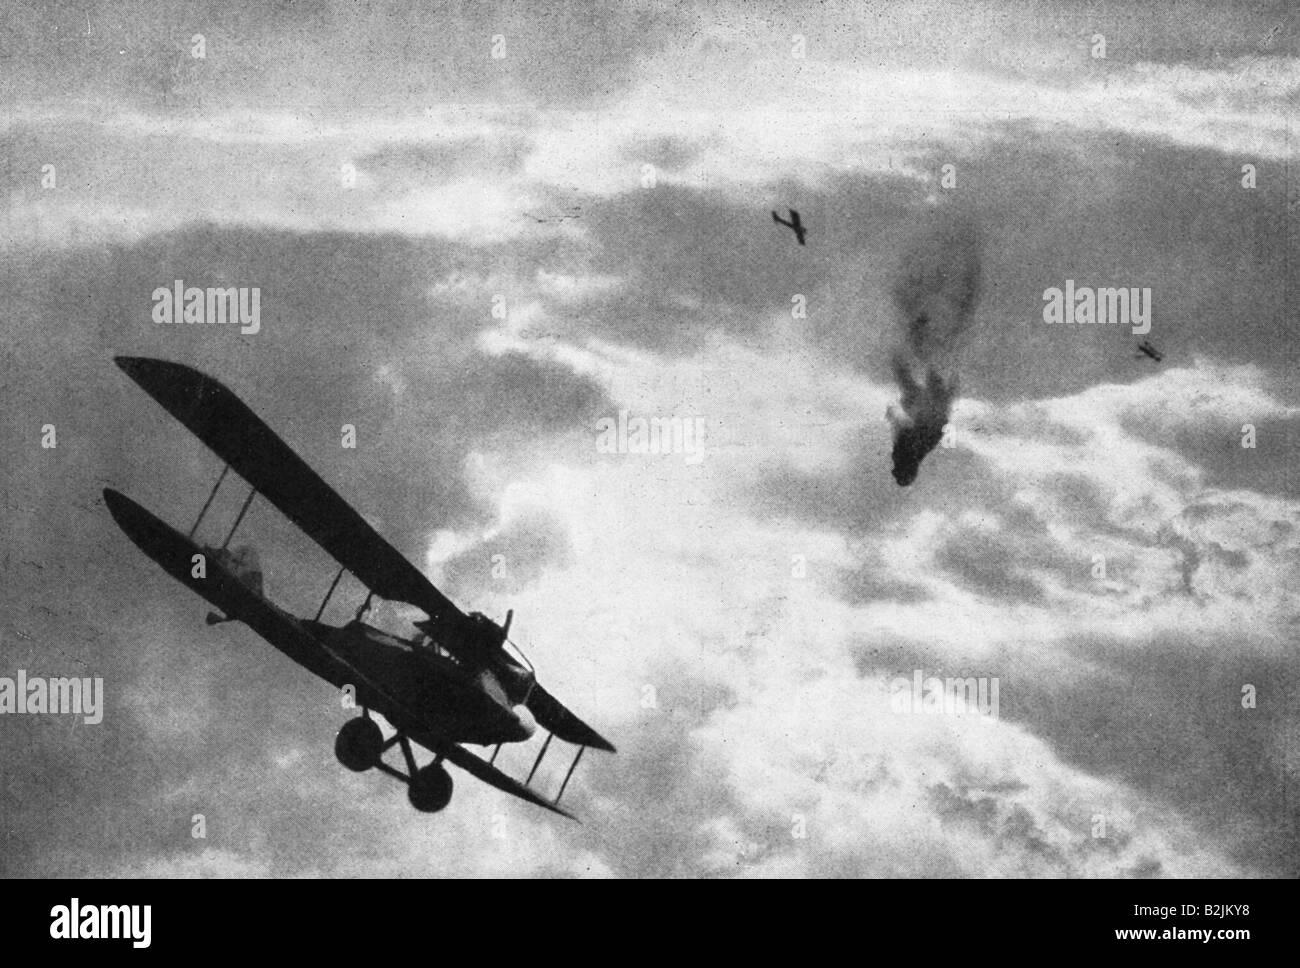 events, First World War / WWI, aerial warfare, German fighter downing a French balloon, France, circa 1916, Additional - Stock Image